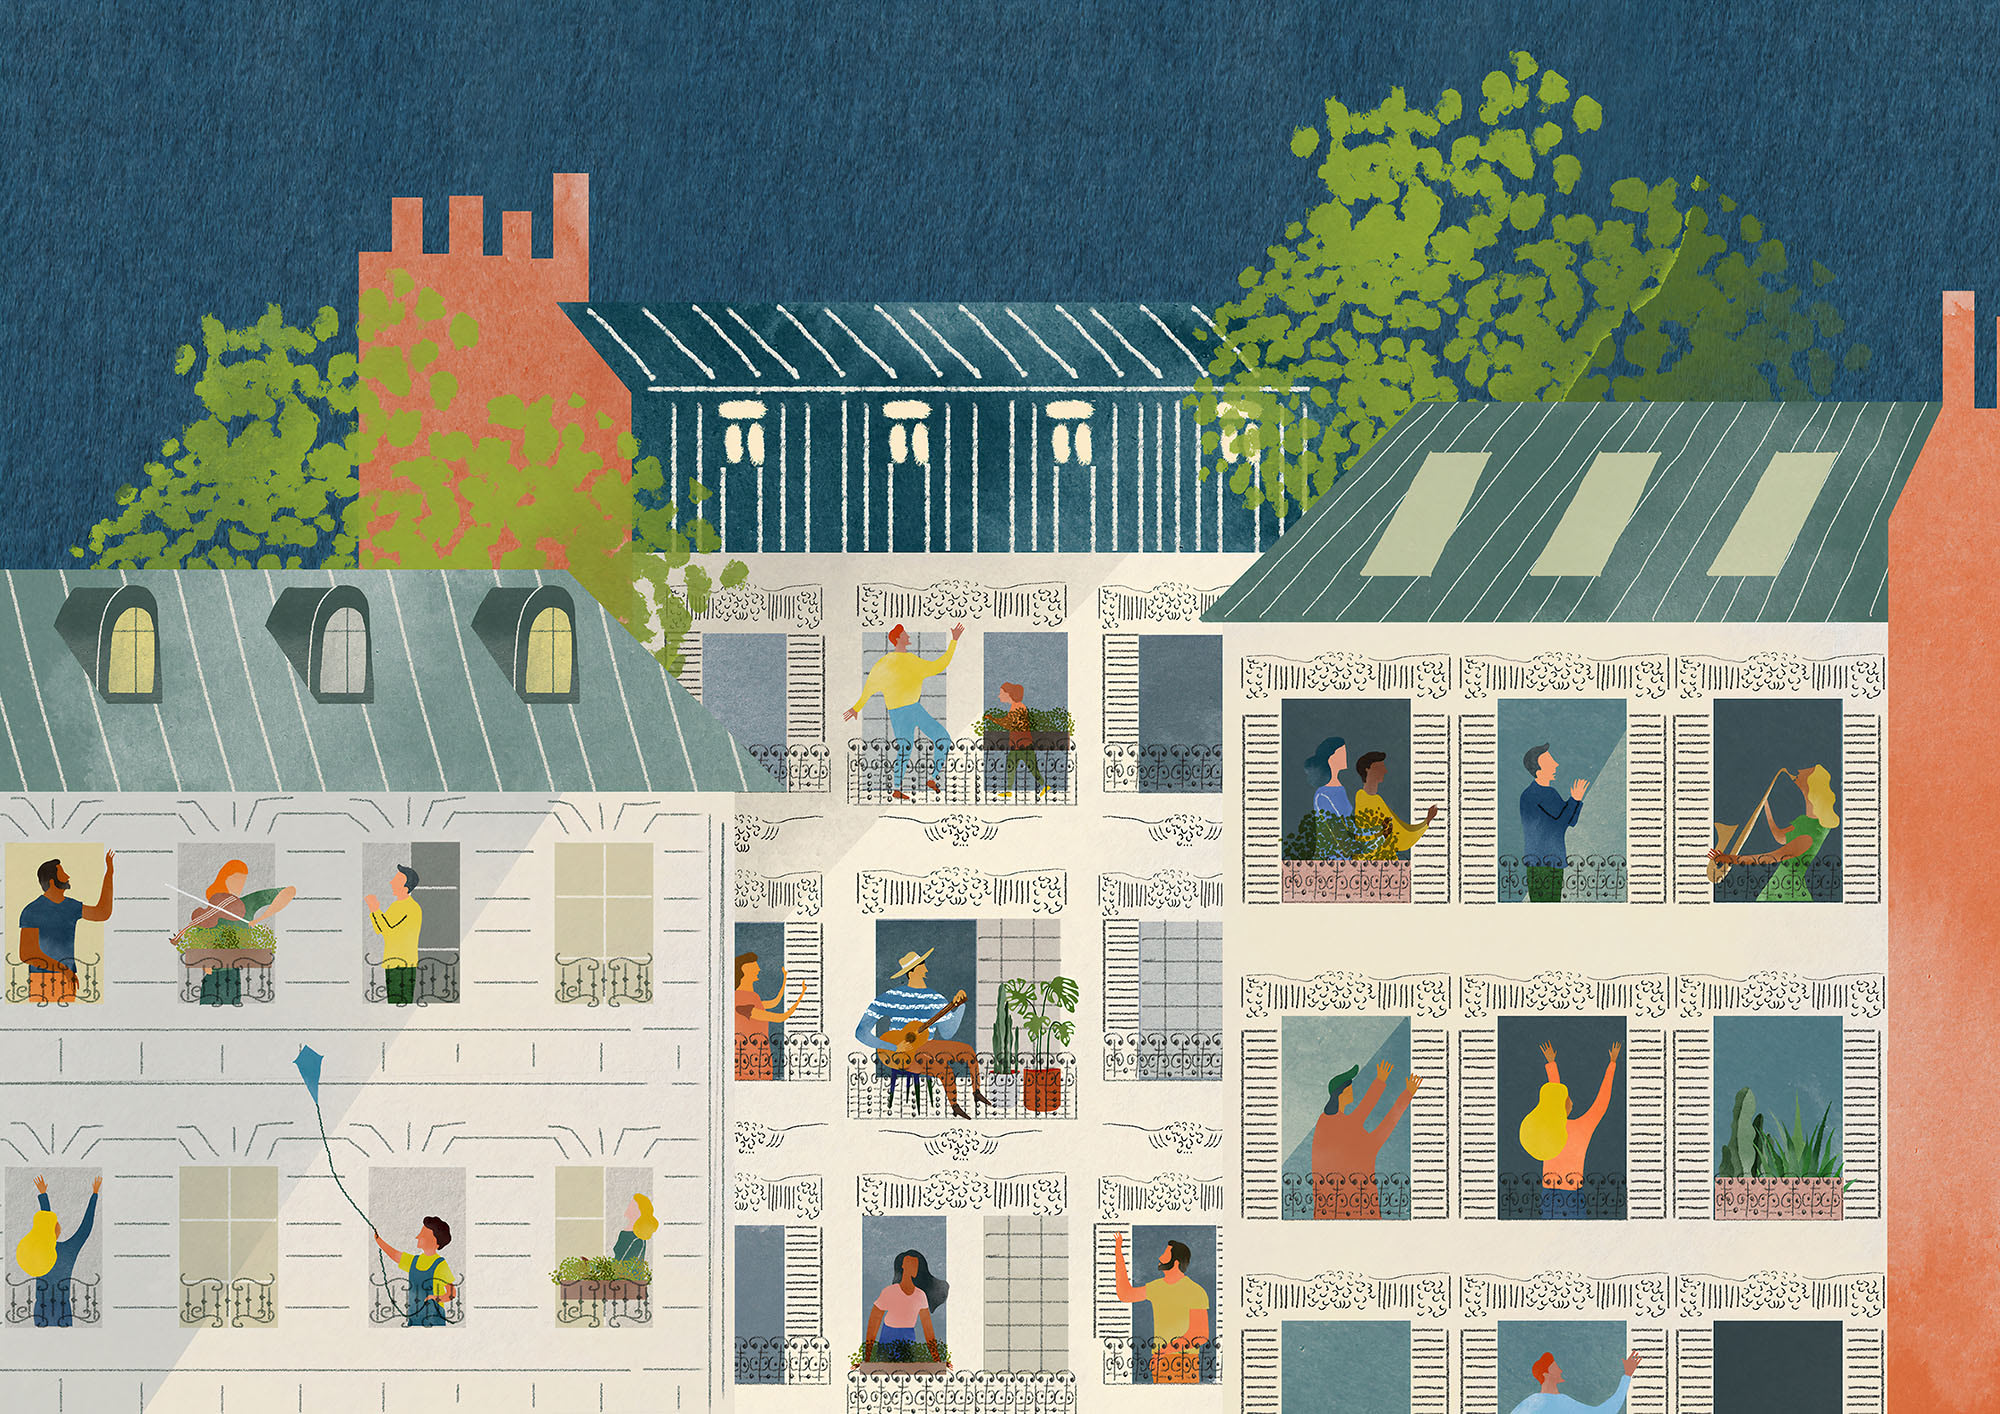 Illustration of people standing at balconies and interacting with each other through music and communication